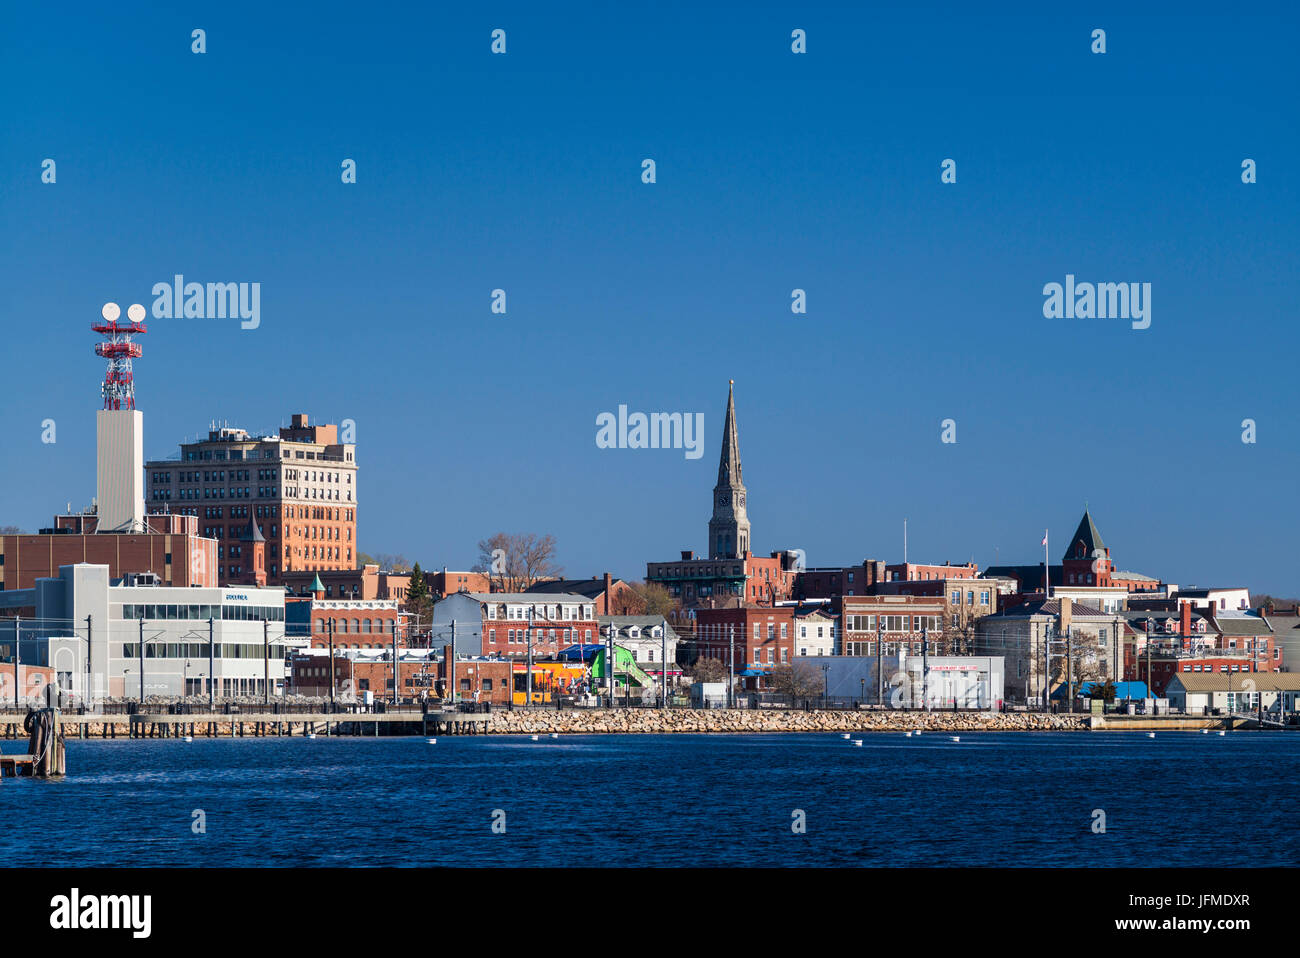 USA, Connecticut, New London, city skyline - Stock Image